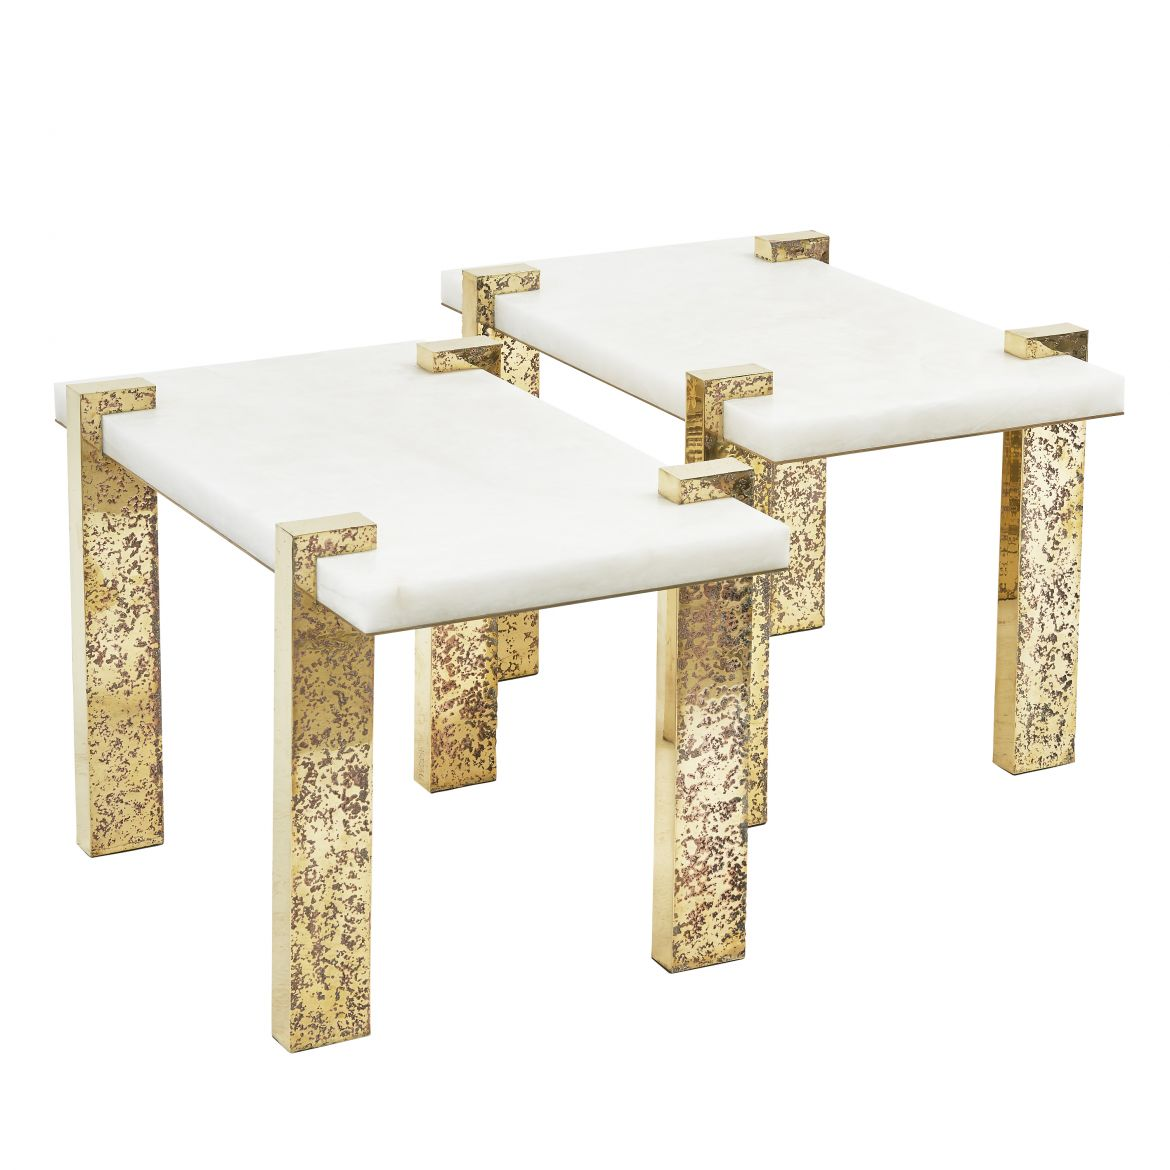 "Alabaster ""Petram"" tables by Arriau"